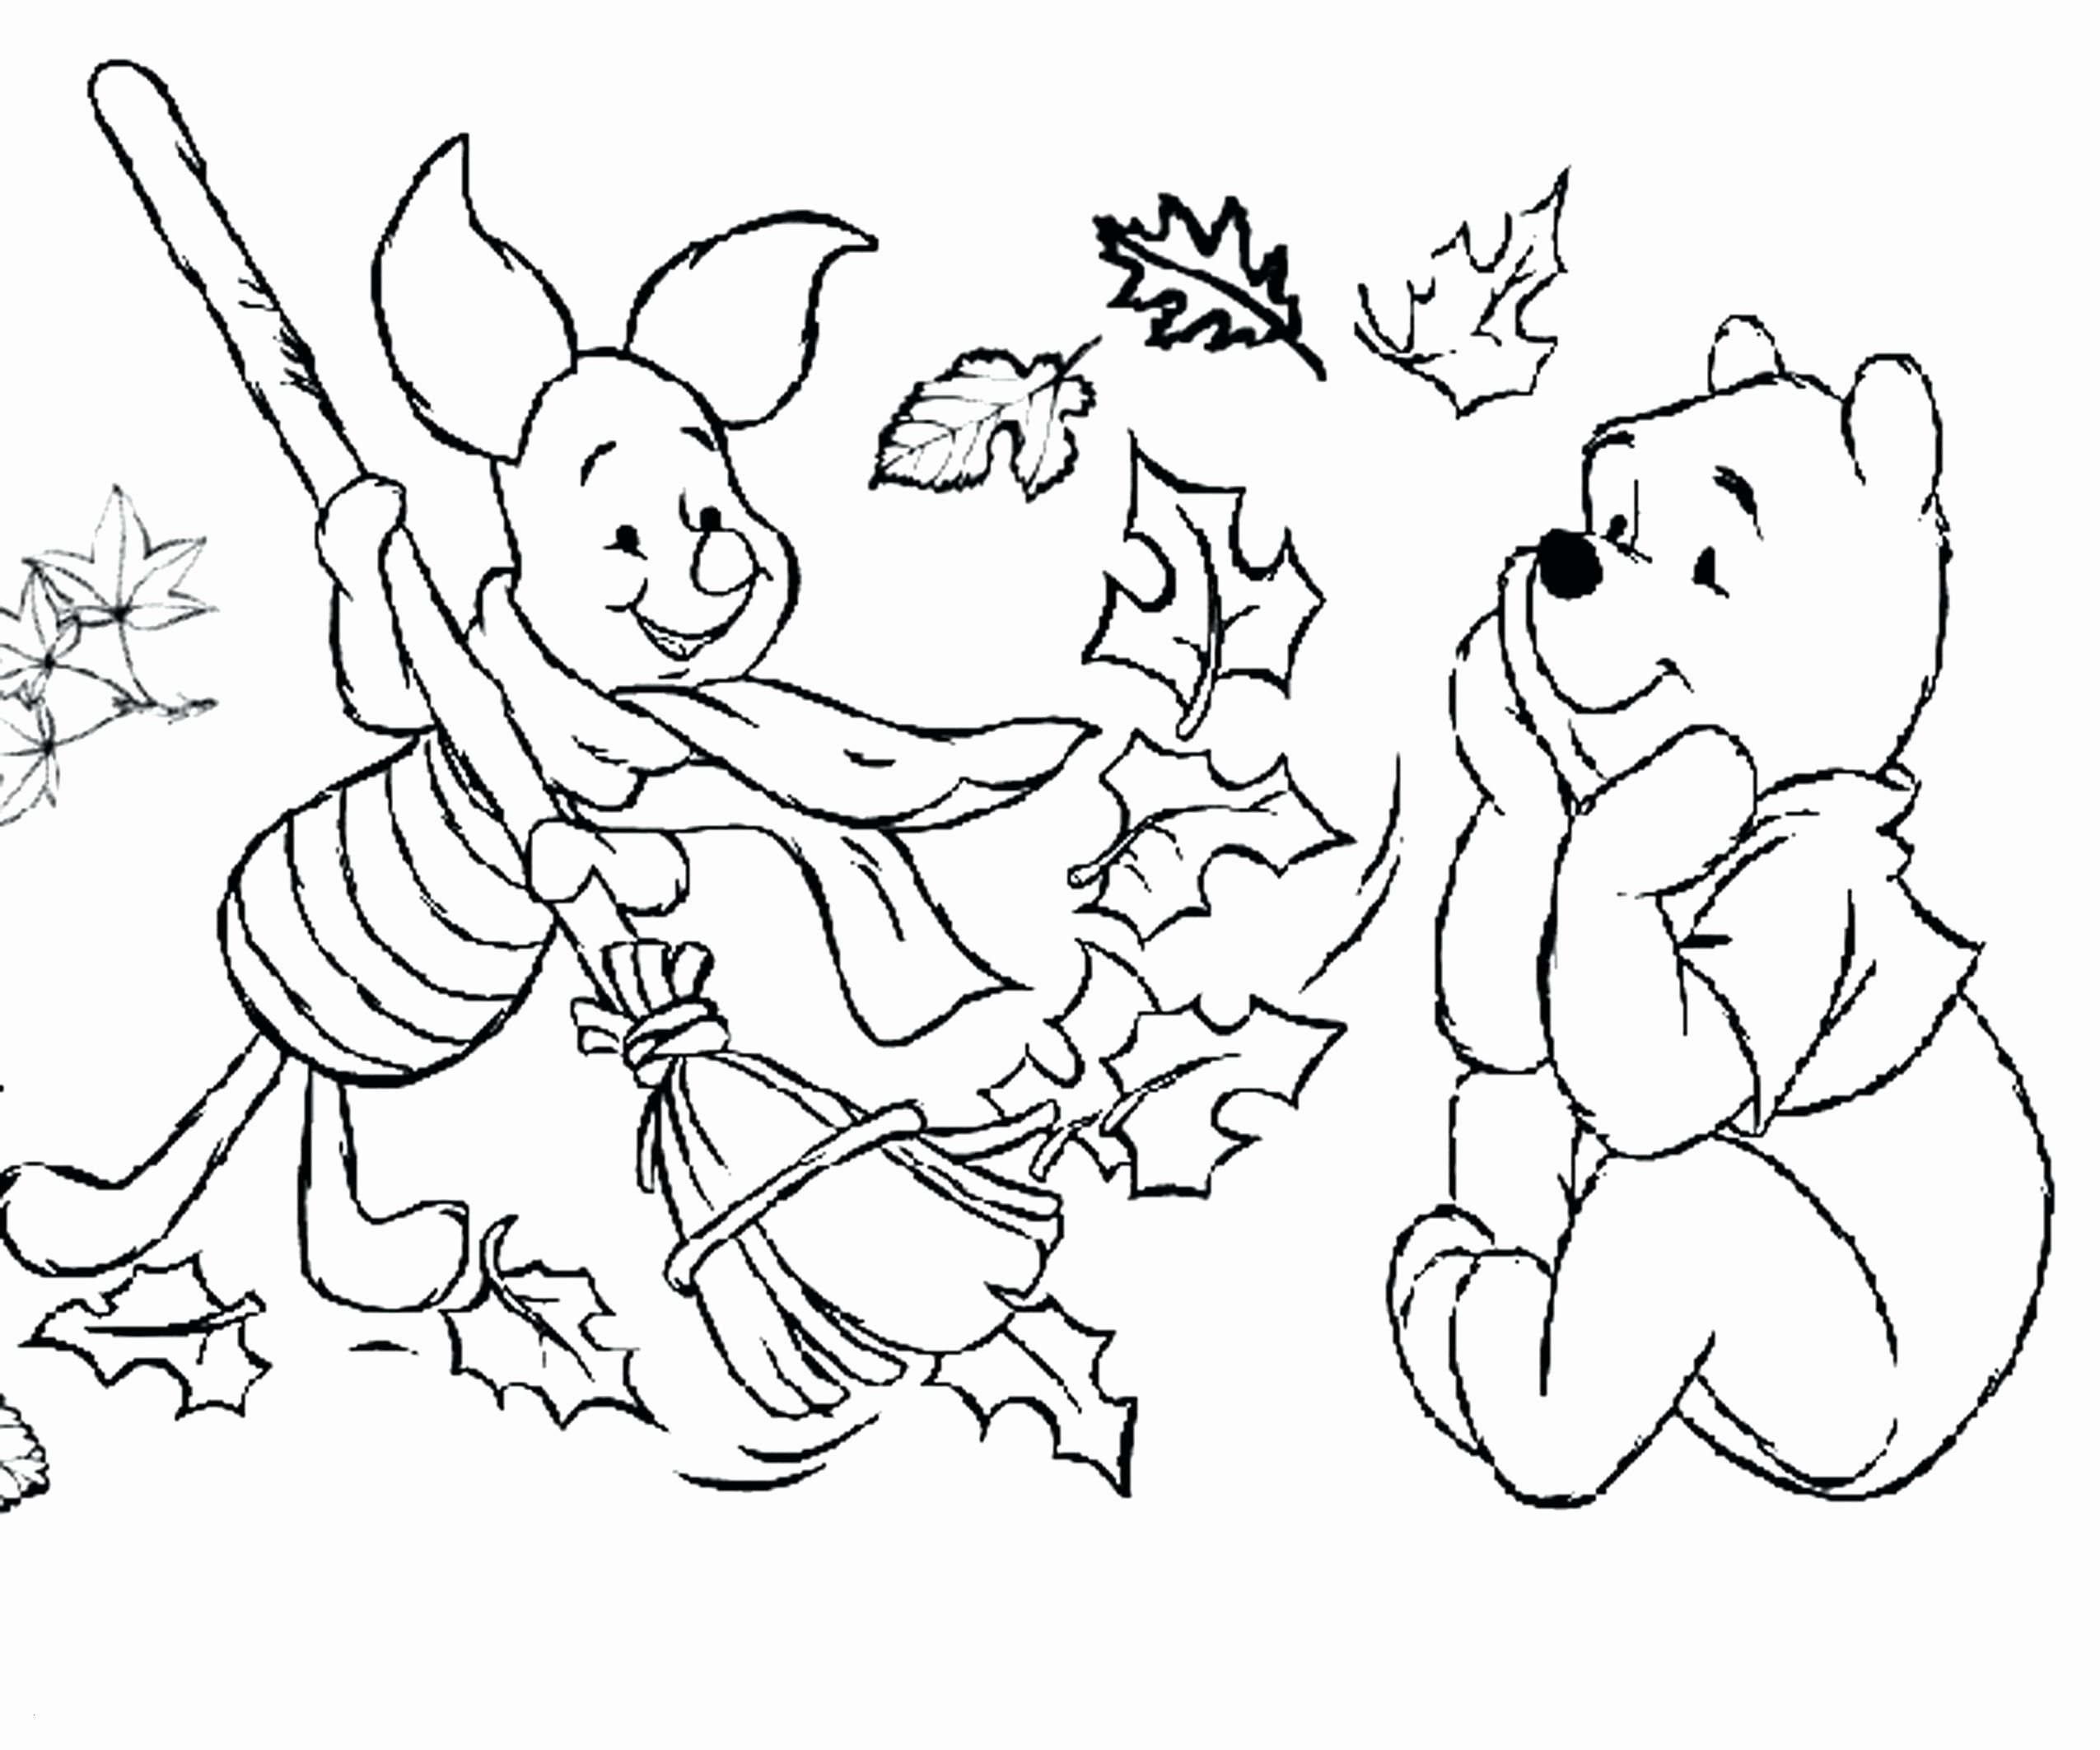 Clown Coloring Pages  to Print 20l - Free Download